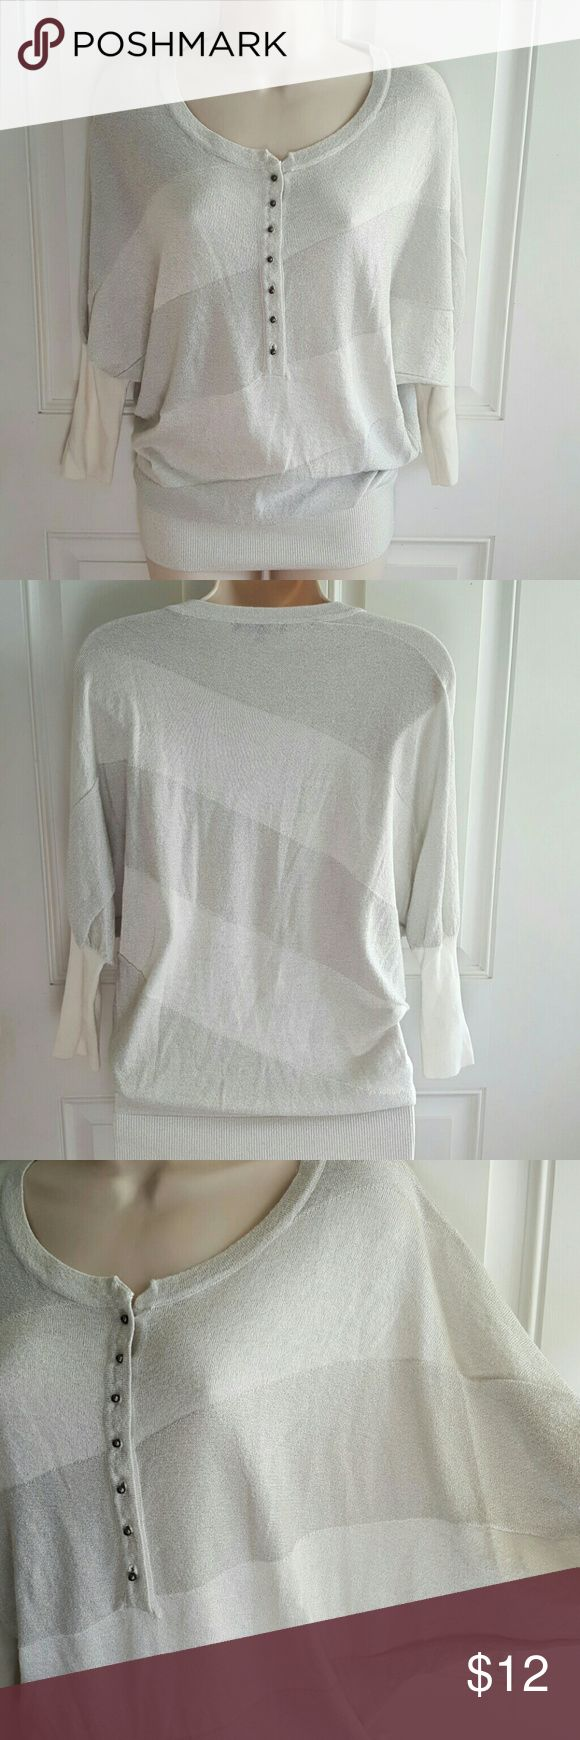 "MATTY M Silver Sparkle Ivory Blouson Top Lightweight. Elbow length batwing sleeve.  Half button. Blouson style elastic ribbed hem.  87% rayon 13% lurex.  Bust 23"" Length 29"" Matty M Tops"